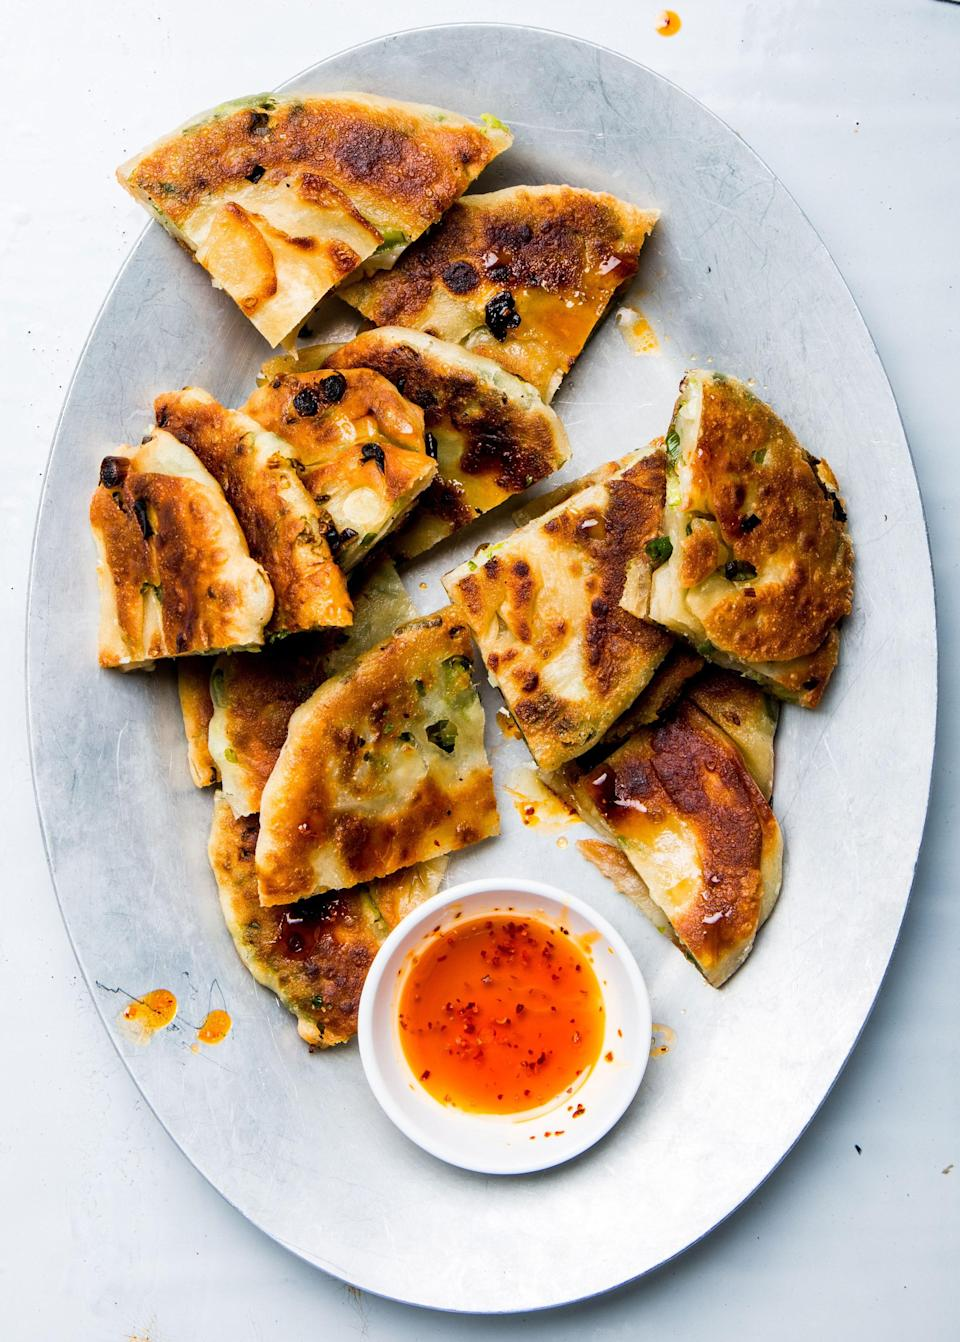 "<h1 class=""title"">Scallion Pancakes</h1> <div class=""caption""> <a href=""https://www.bonappetit.com/recipe/scallion-pancakes-2?mbid=synd_yahoo_rss"" rel=""nofollow noopener"" target=""_blank"" data-ylk=""slk:Like this"" class=""link rapid-noclick-resp"">Like this</a>, but skip the triangle cuts and make it a wrap. </div> <cite class=""credit"">Photo by Alex Lau, Food Styling by Sue Li</cite>"